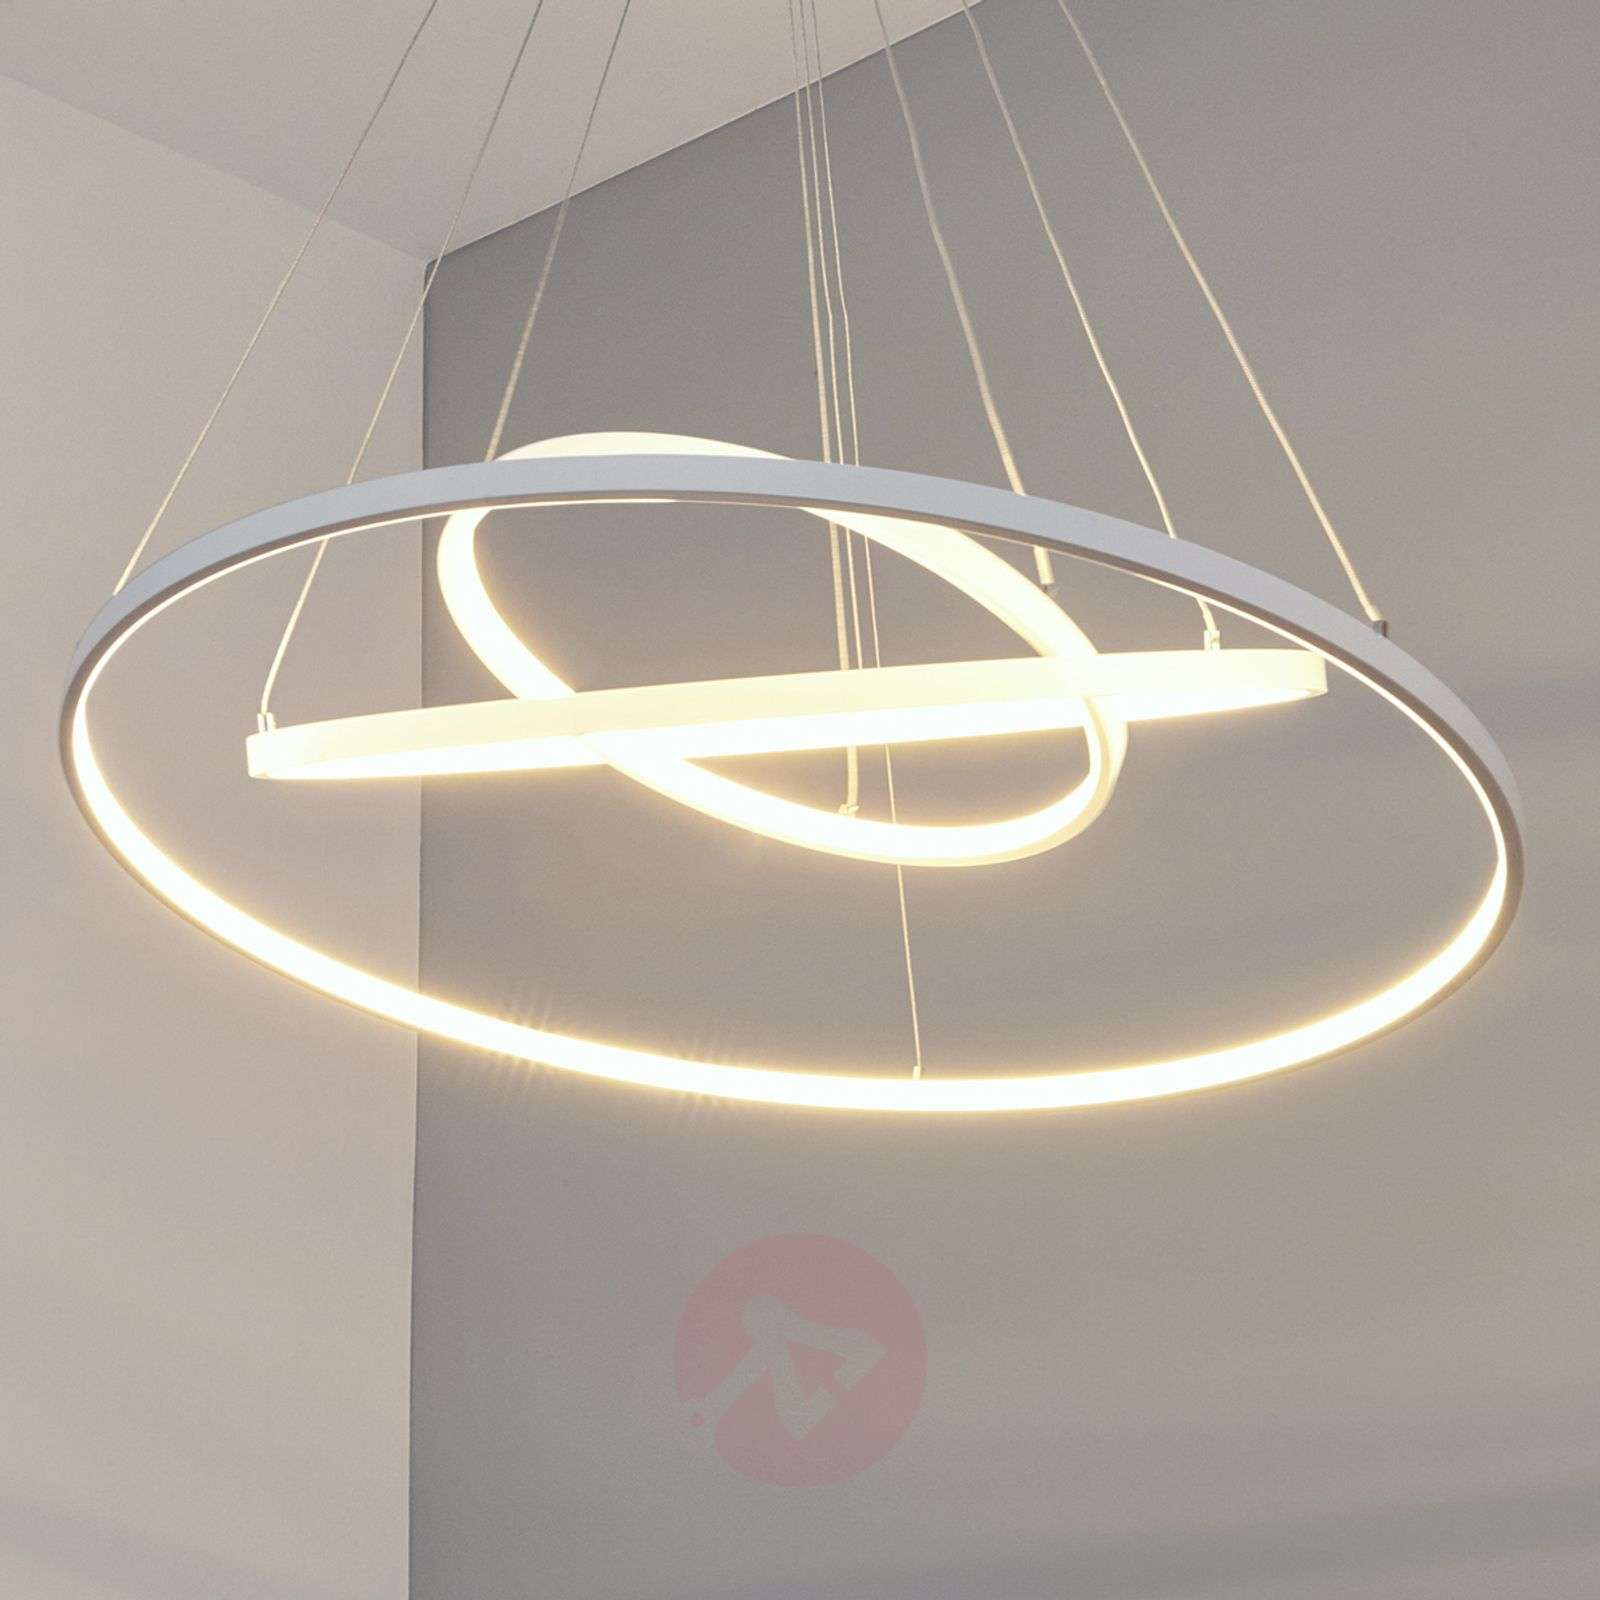 Powerful LED pendant lamp Eline with 3 rings-9987046-02